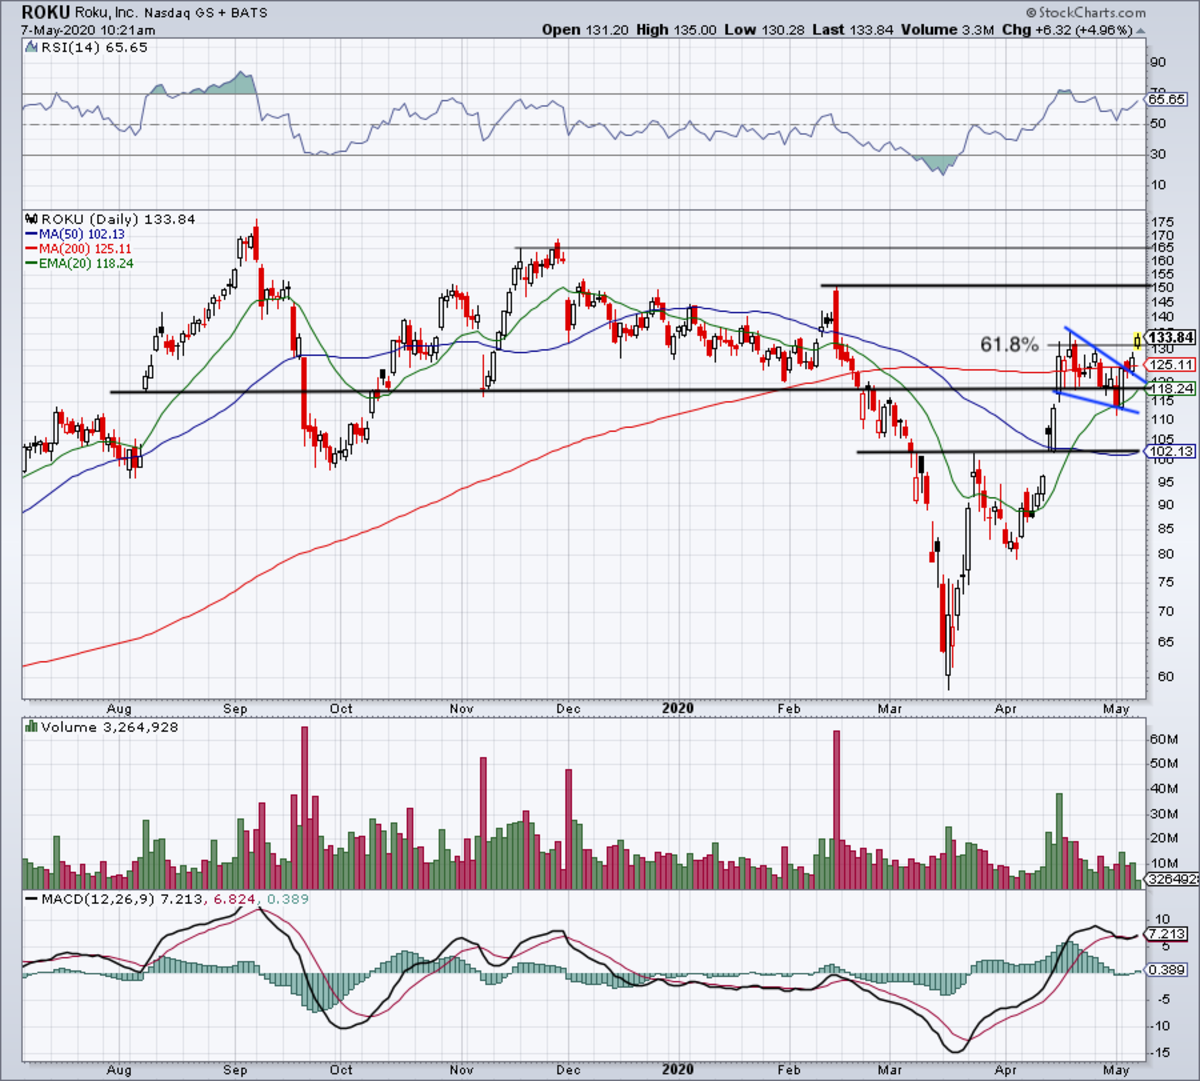 Daily chart of Roku stock.